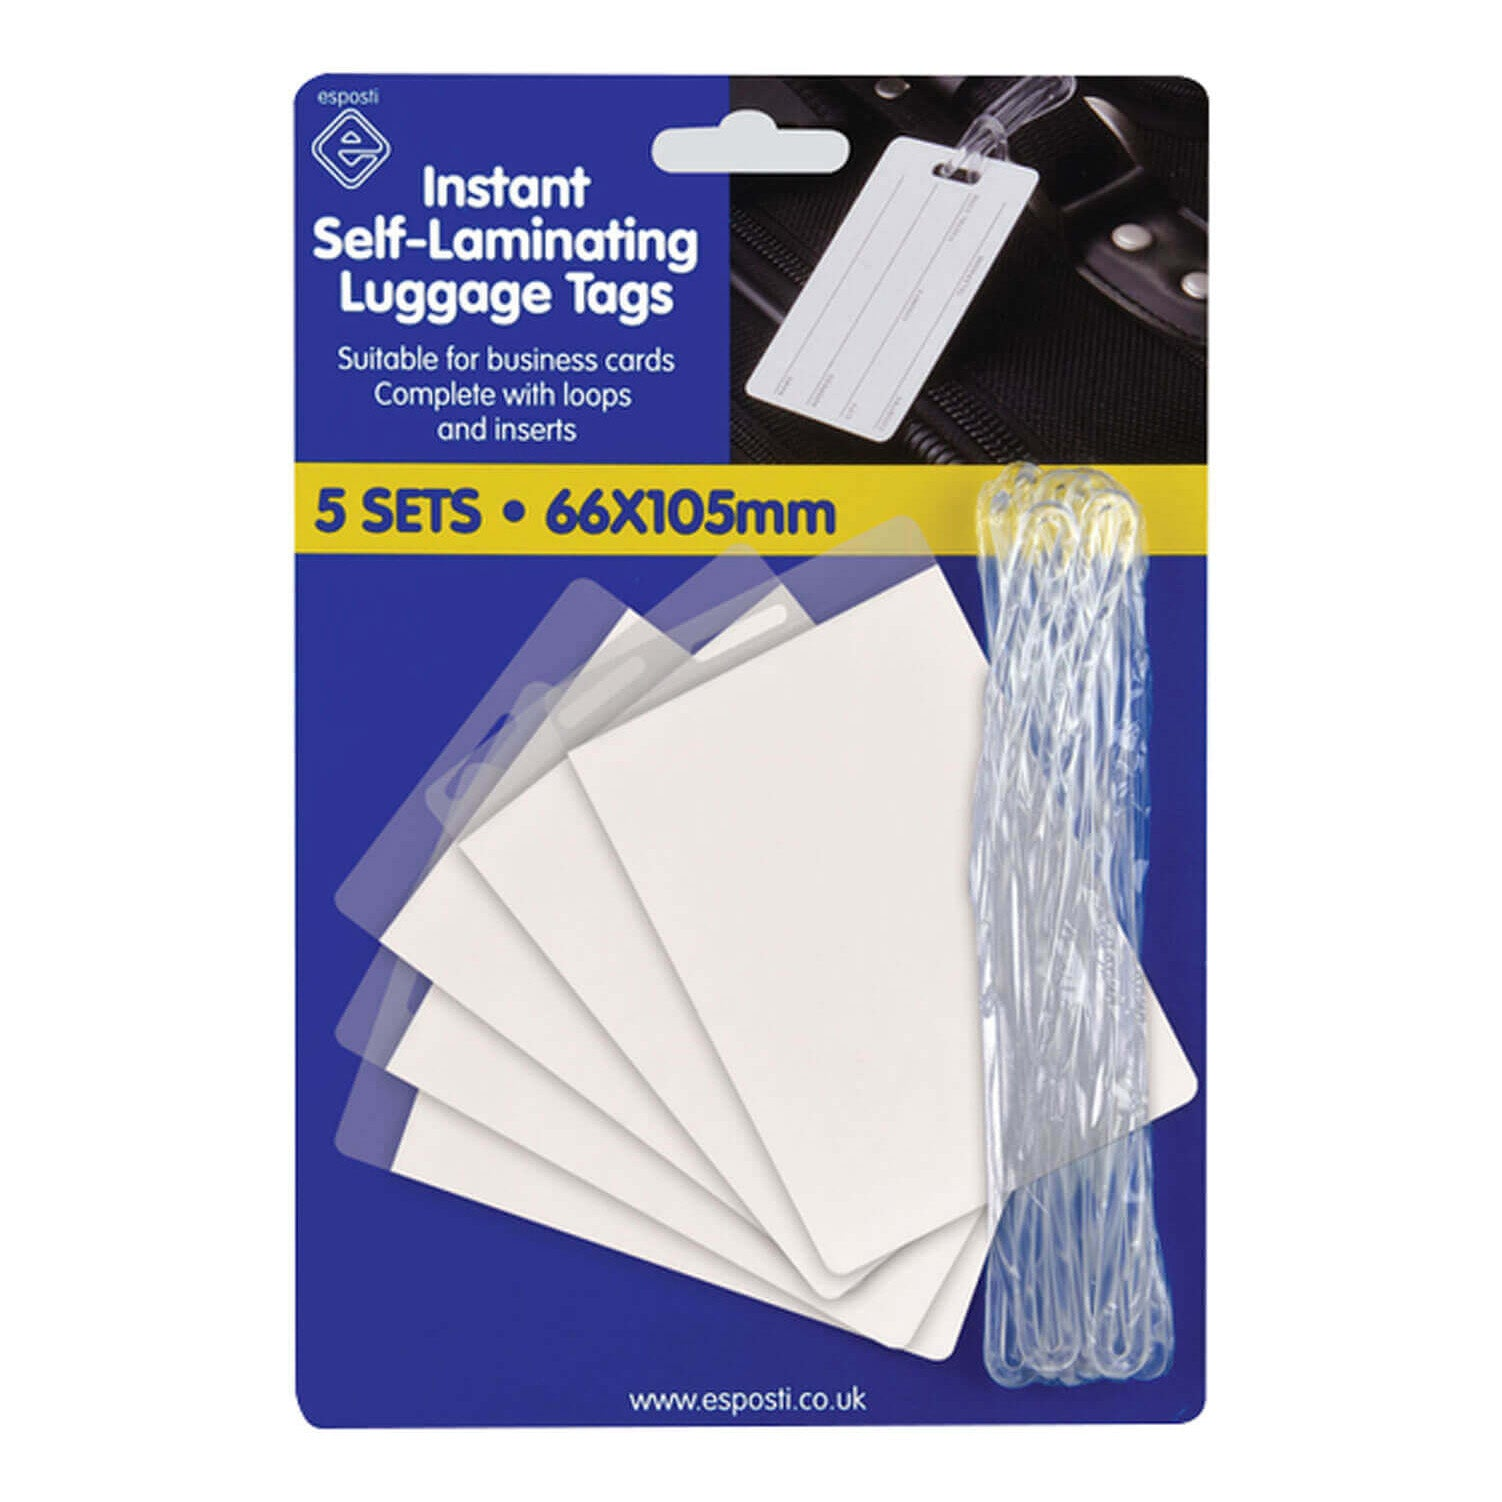 Esposti Self Laminating Luggage Tags 5 Sets Per Pack Suitable For Business Cards - 66 x 105 mm